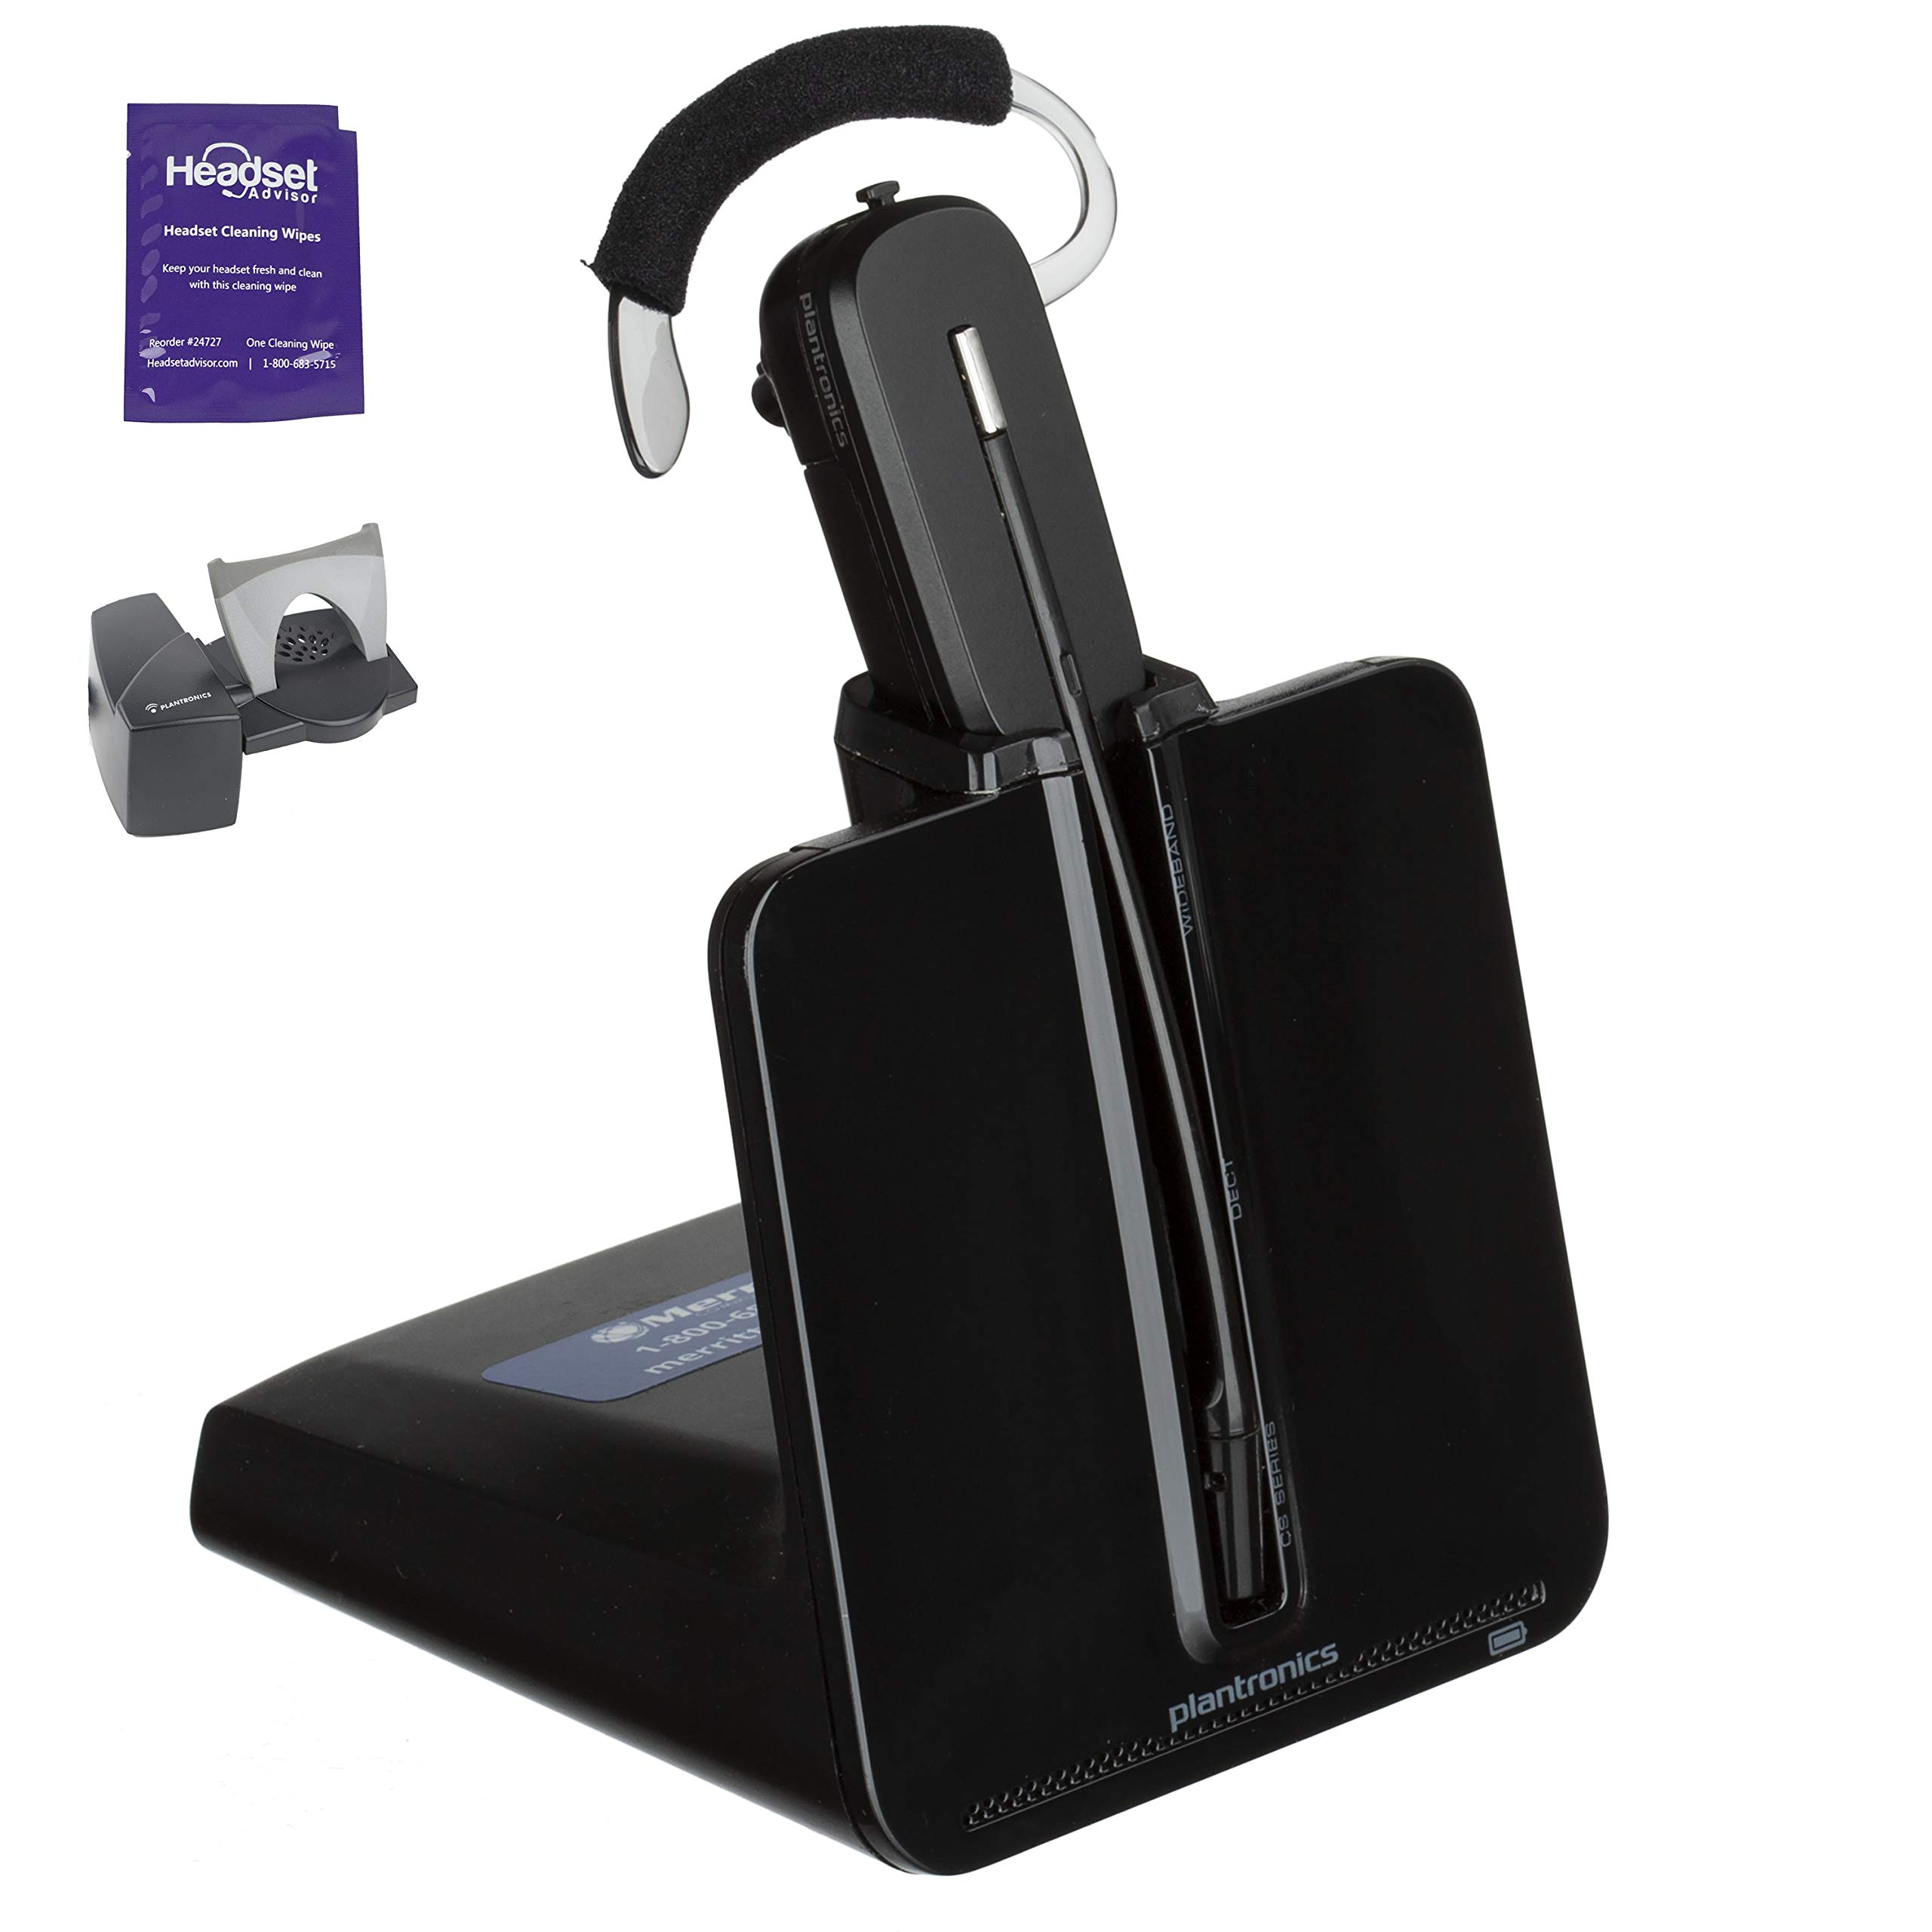 Plantronics CS540 Wireless Headset Bundle with Lifter and Headset Advisor Wipe (Renewed) by Plantronics (Image #1)